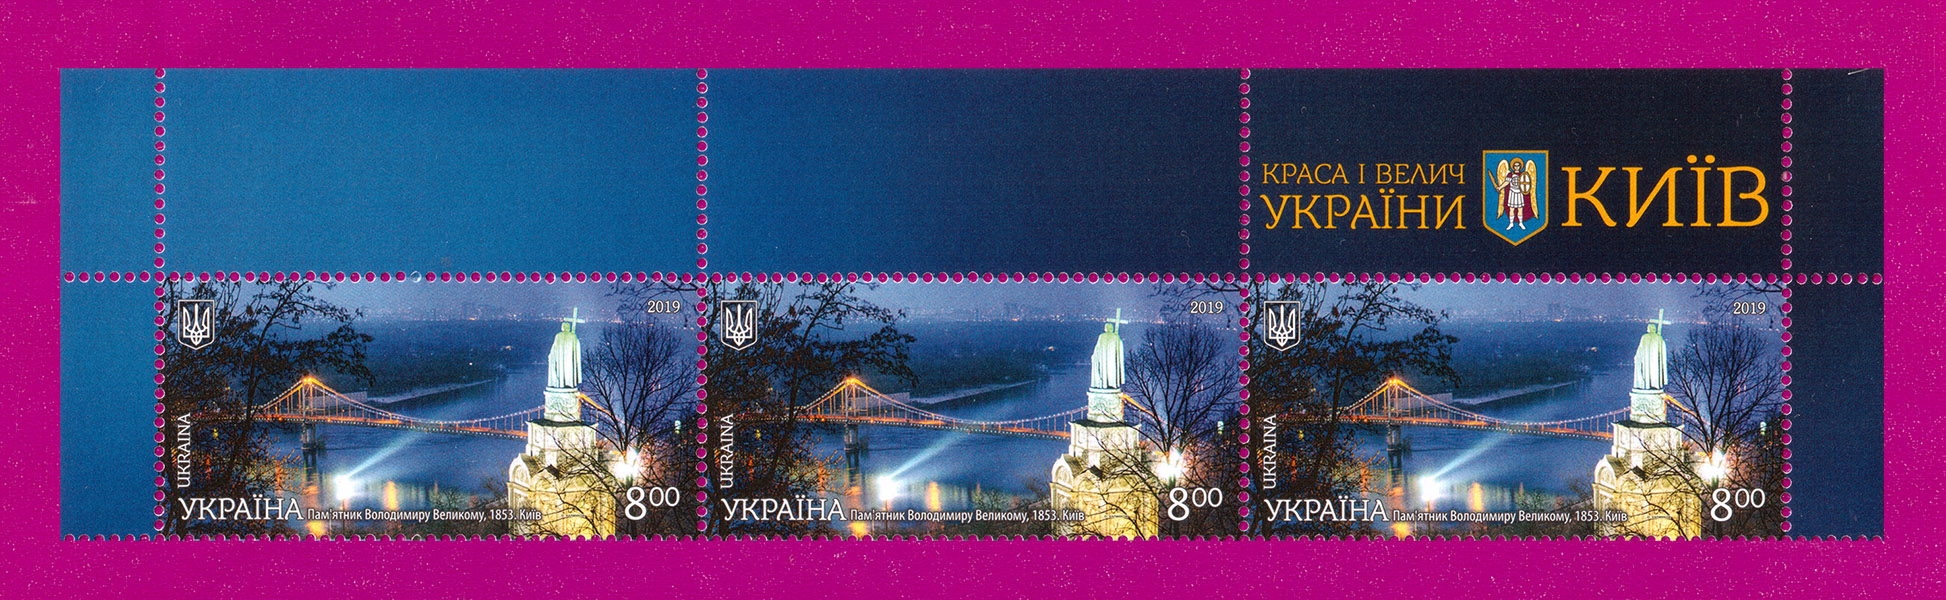 Ukraine stamps Part of the sheetlet Grand Prince of Kyiv Vladimir UP